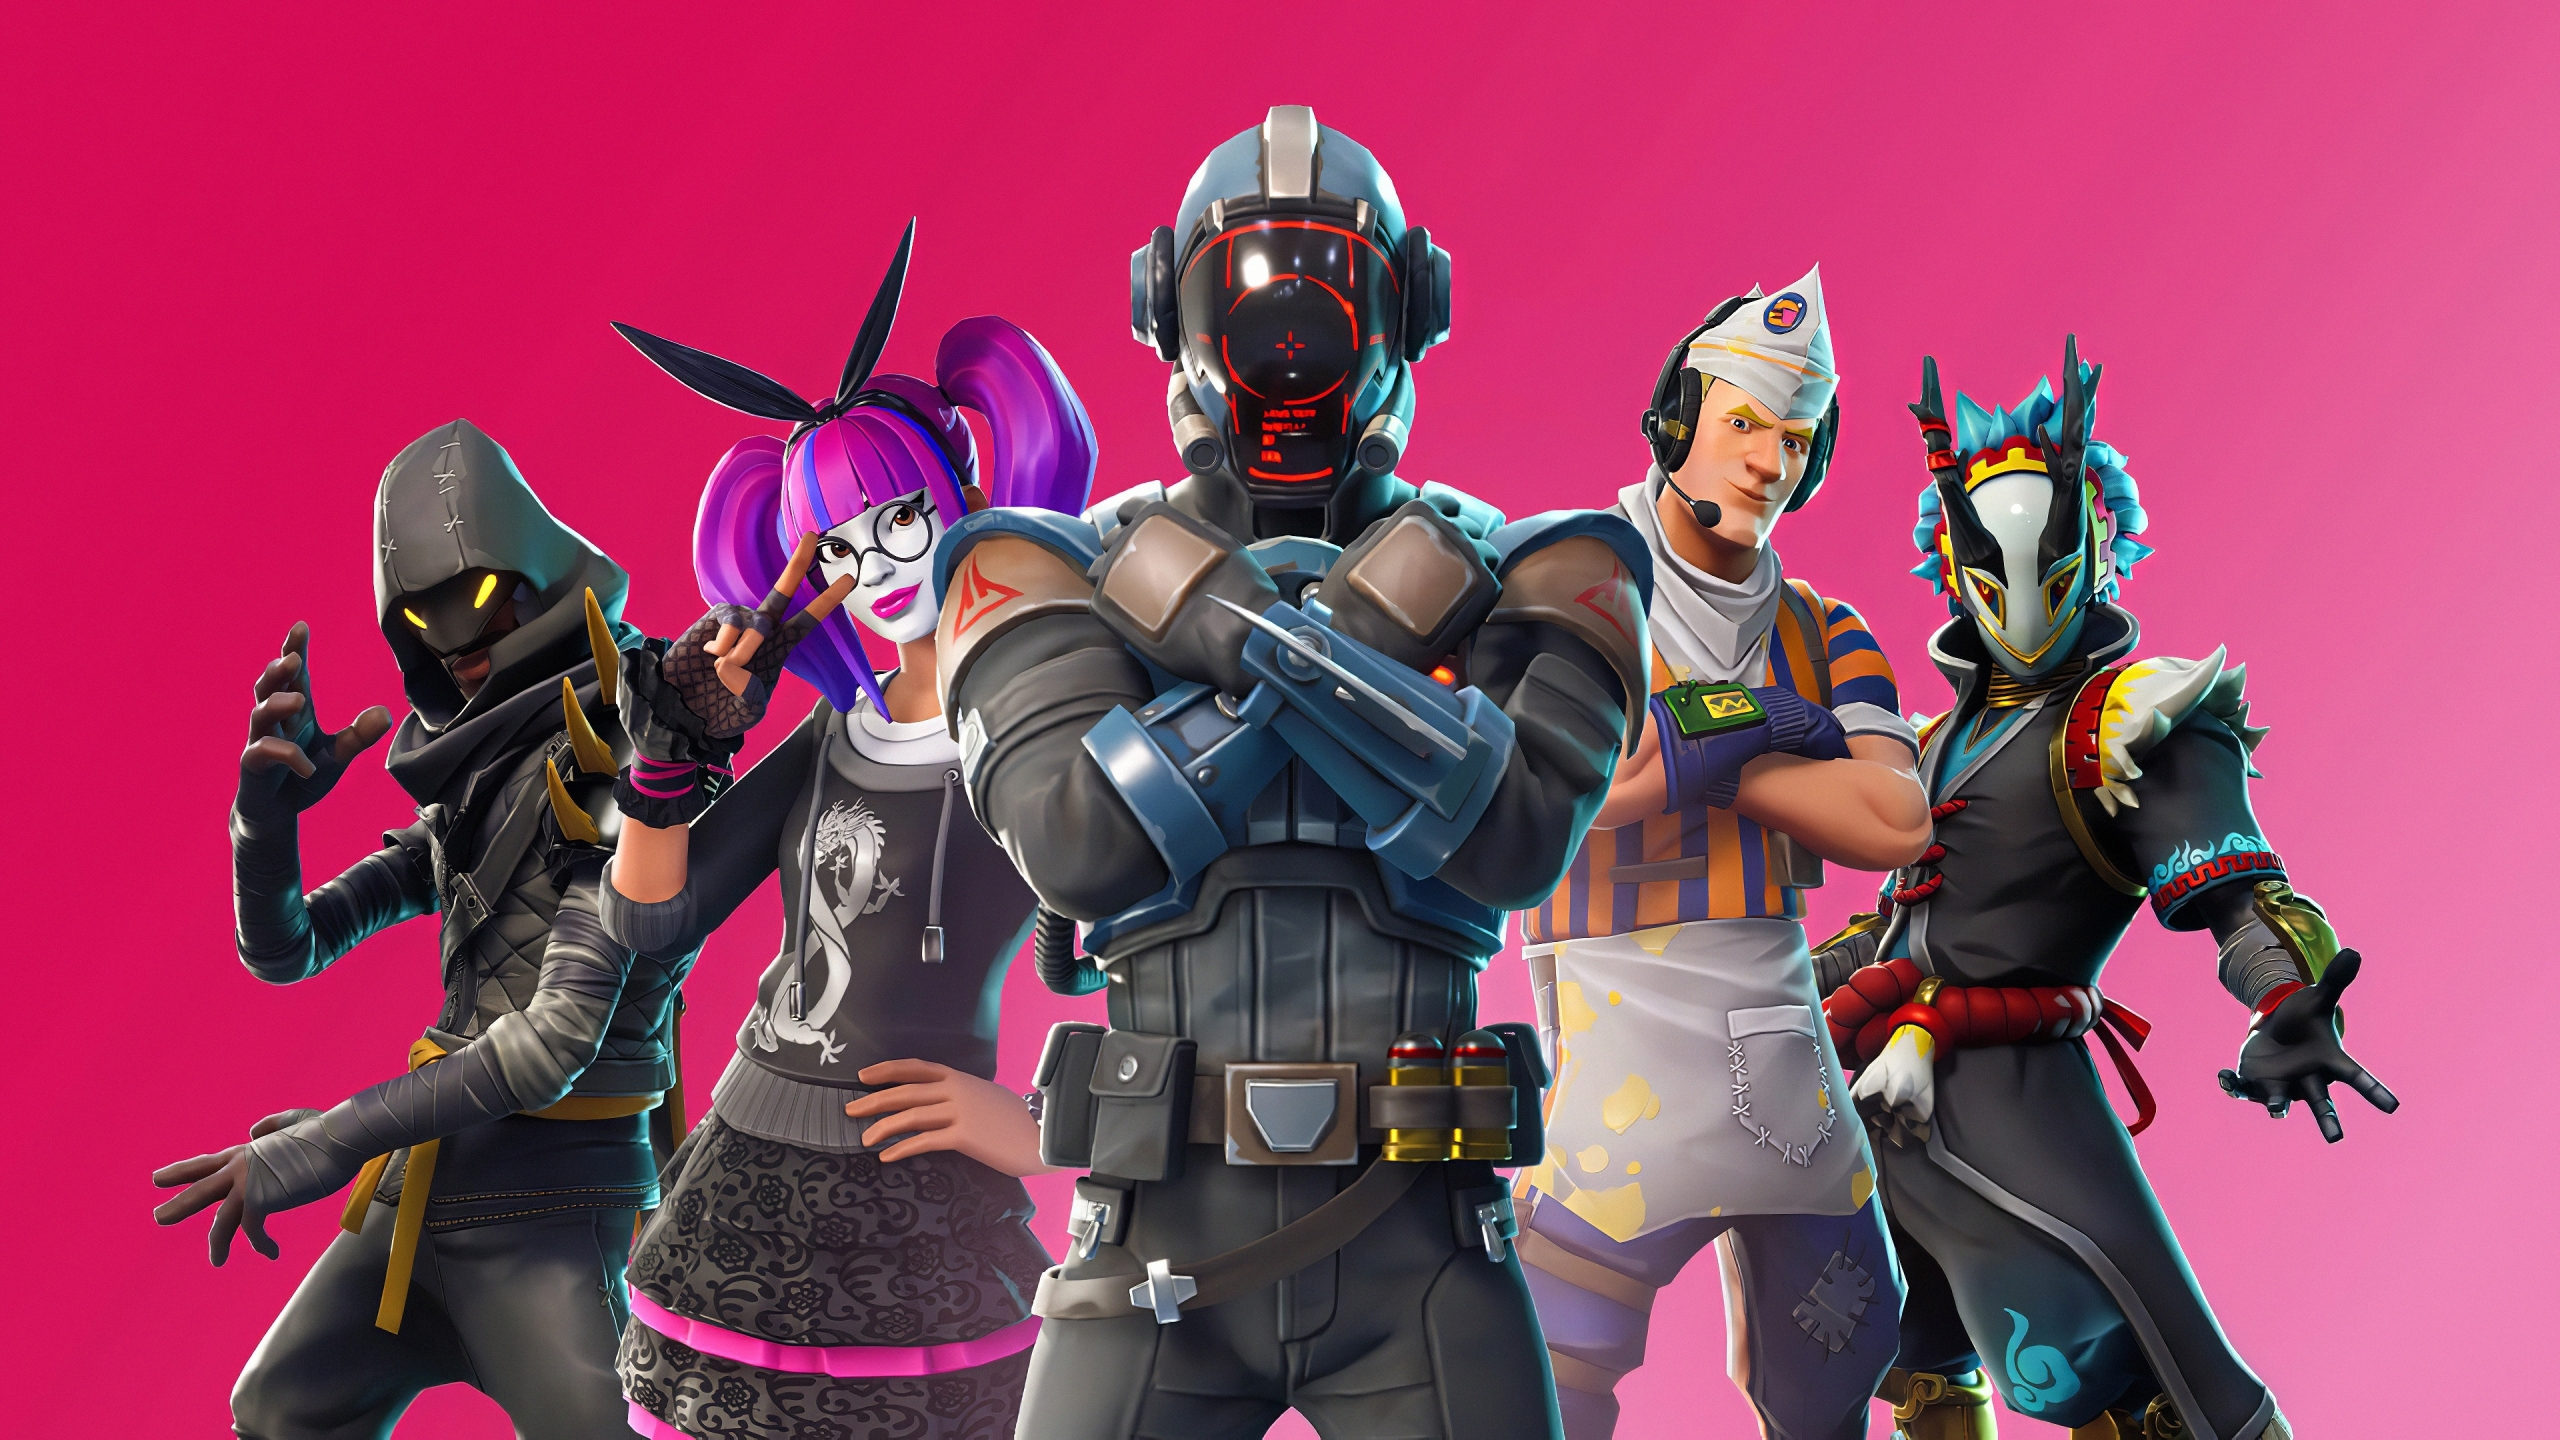 2560x1440 Fortnite 11 Team 1440p Resolution Wallpaper Hd